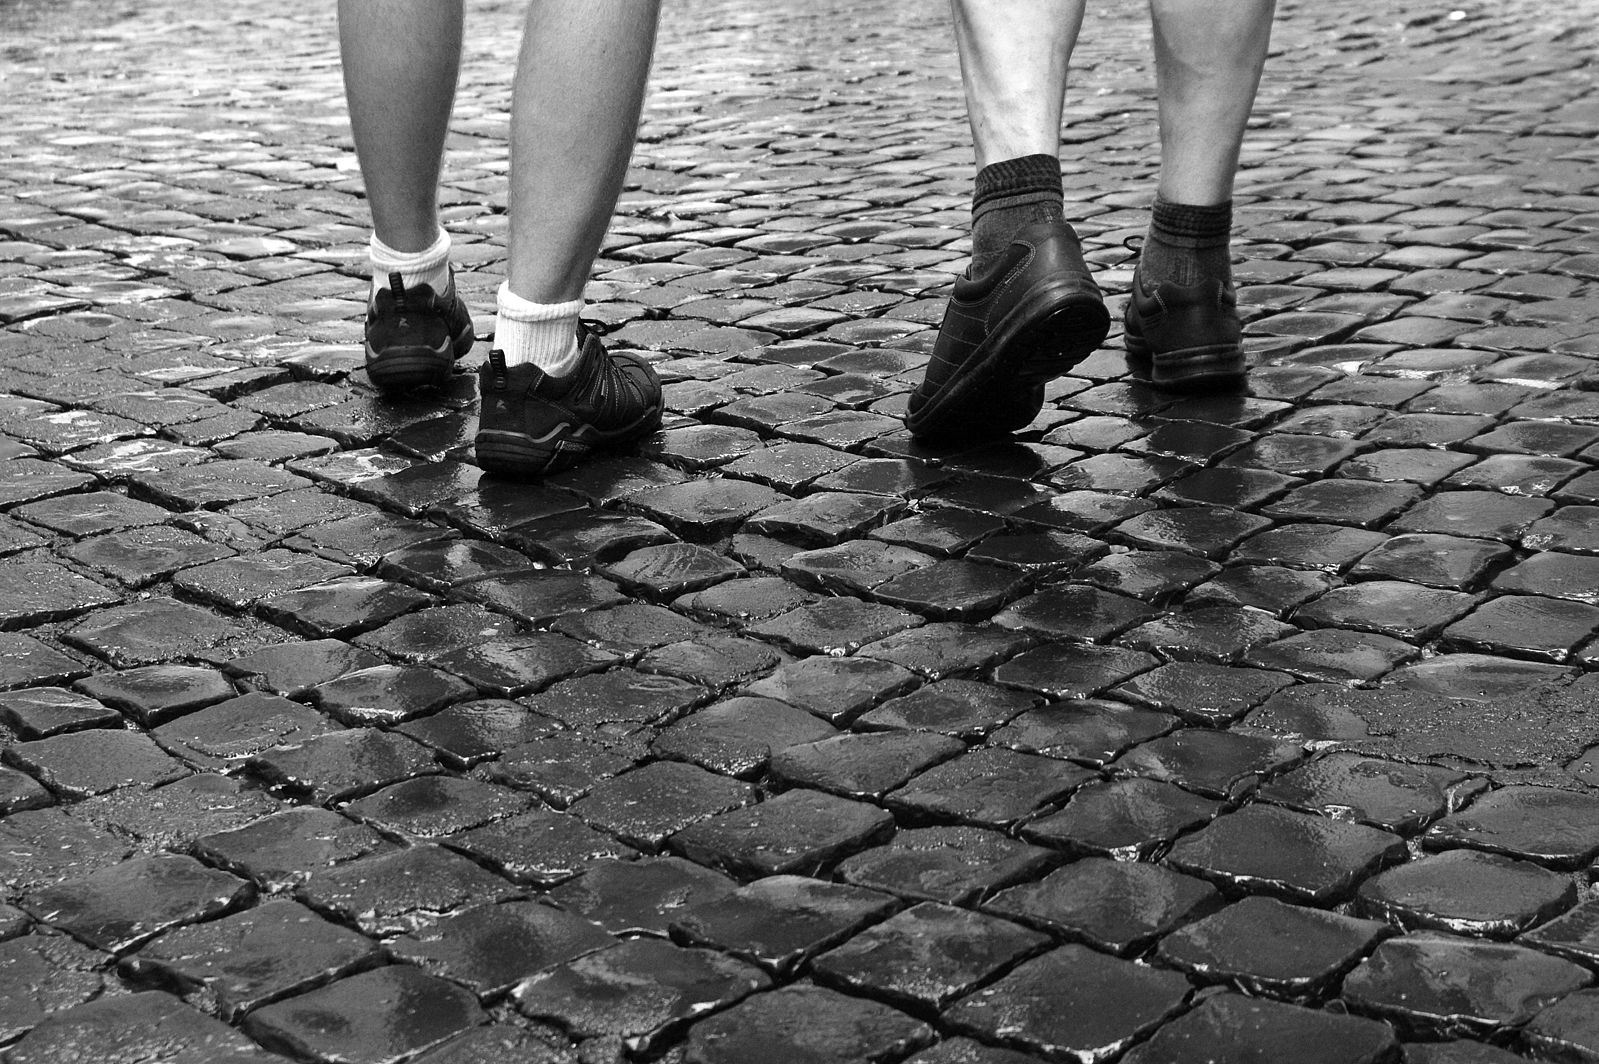 walking 10,000 steps per day for activity requirements - walking on cobblestones in Rome